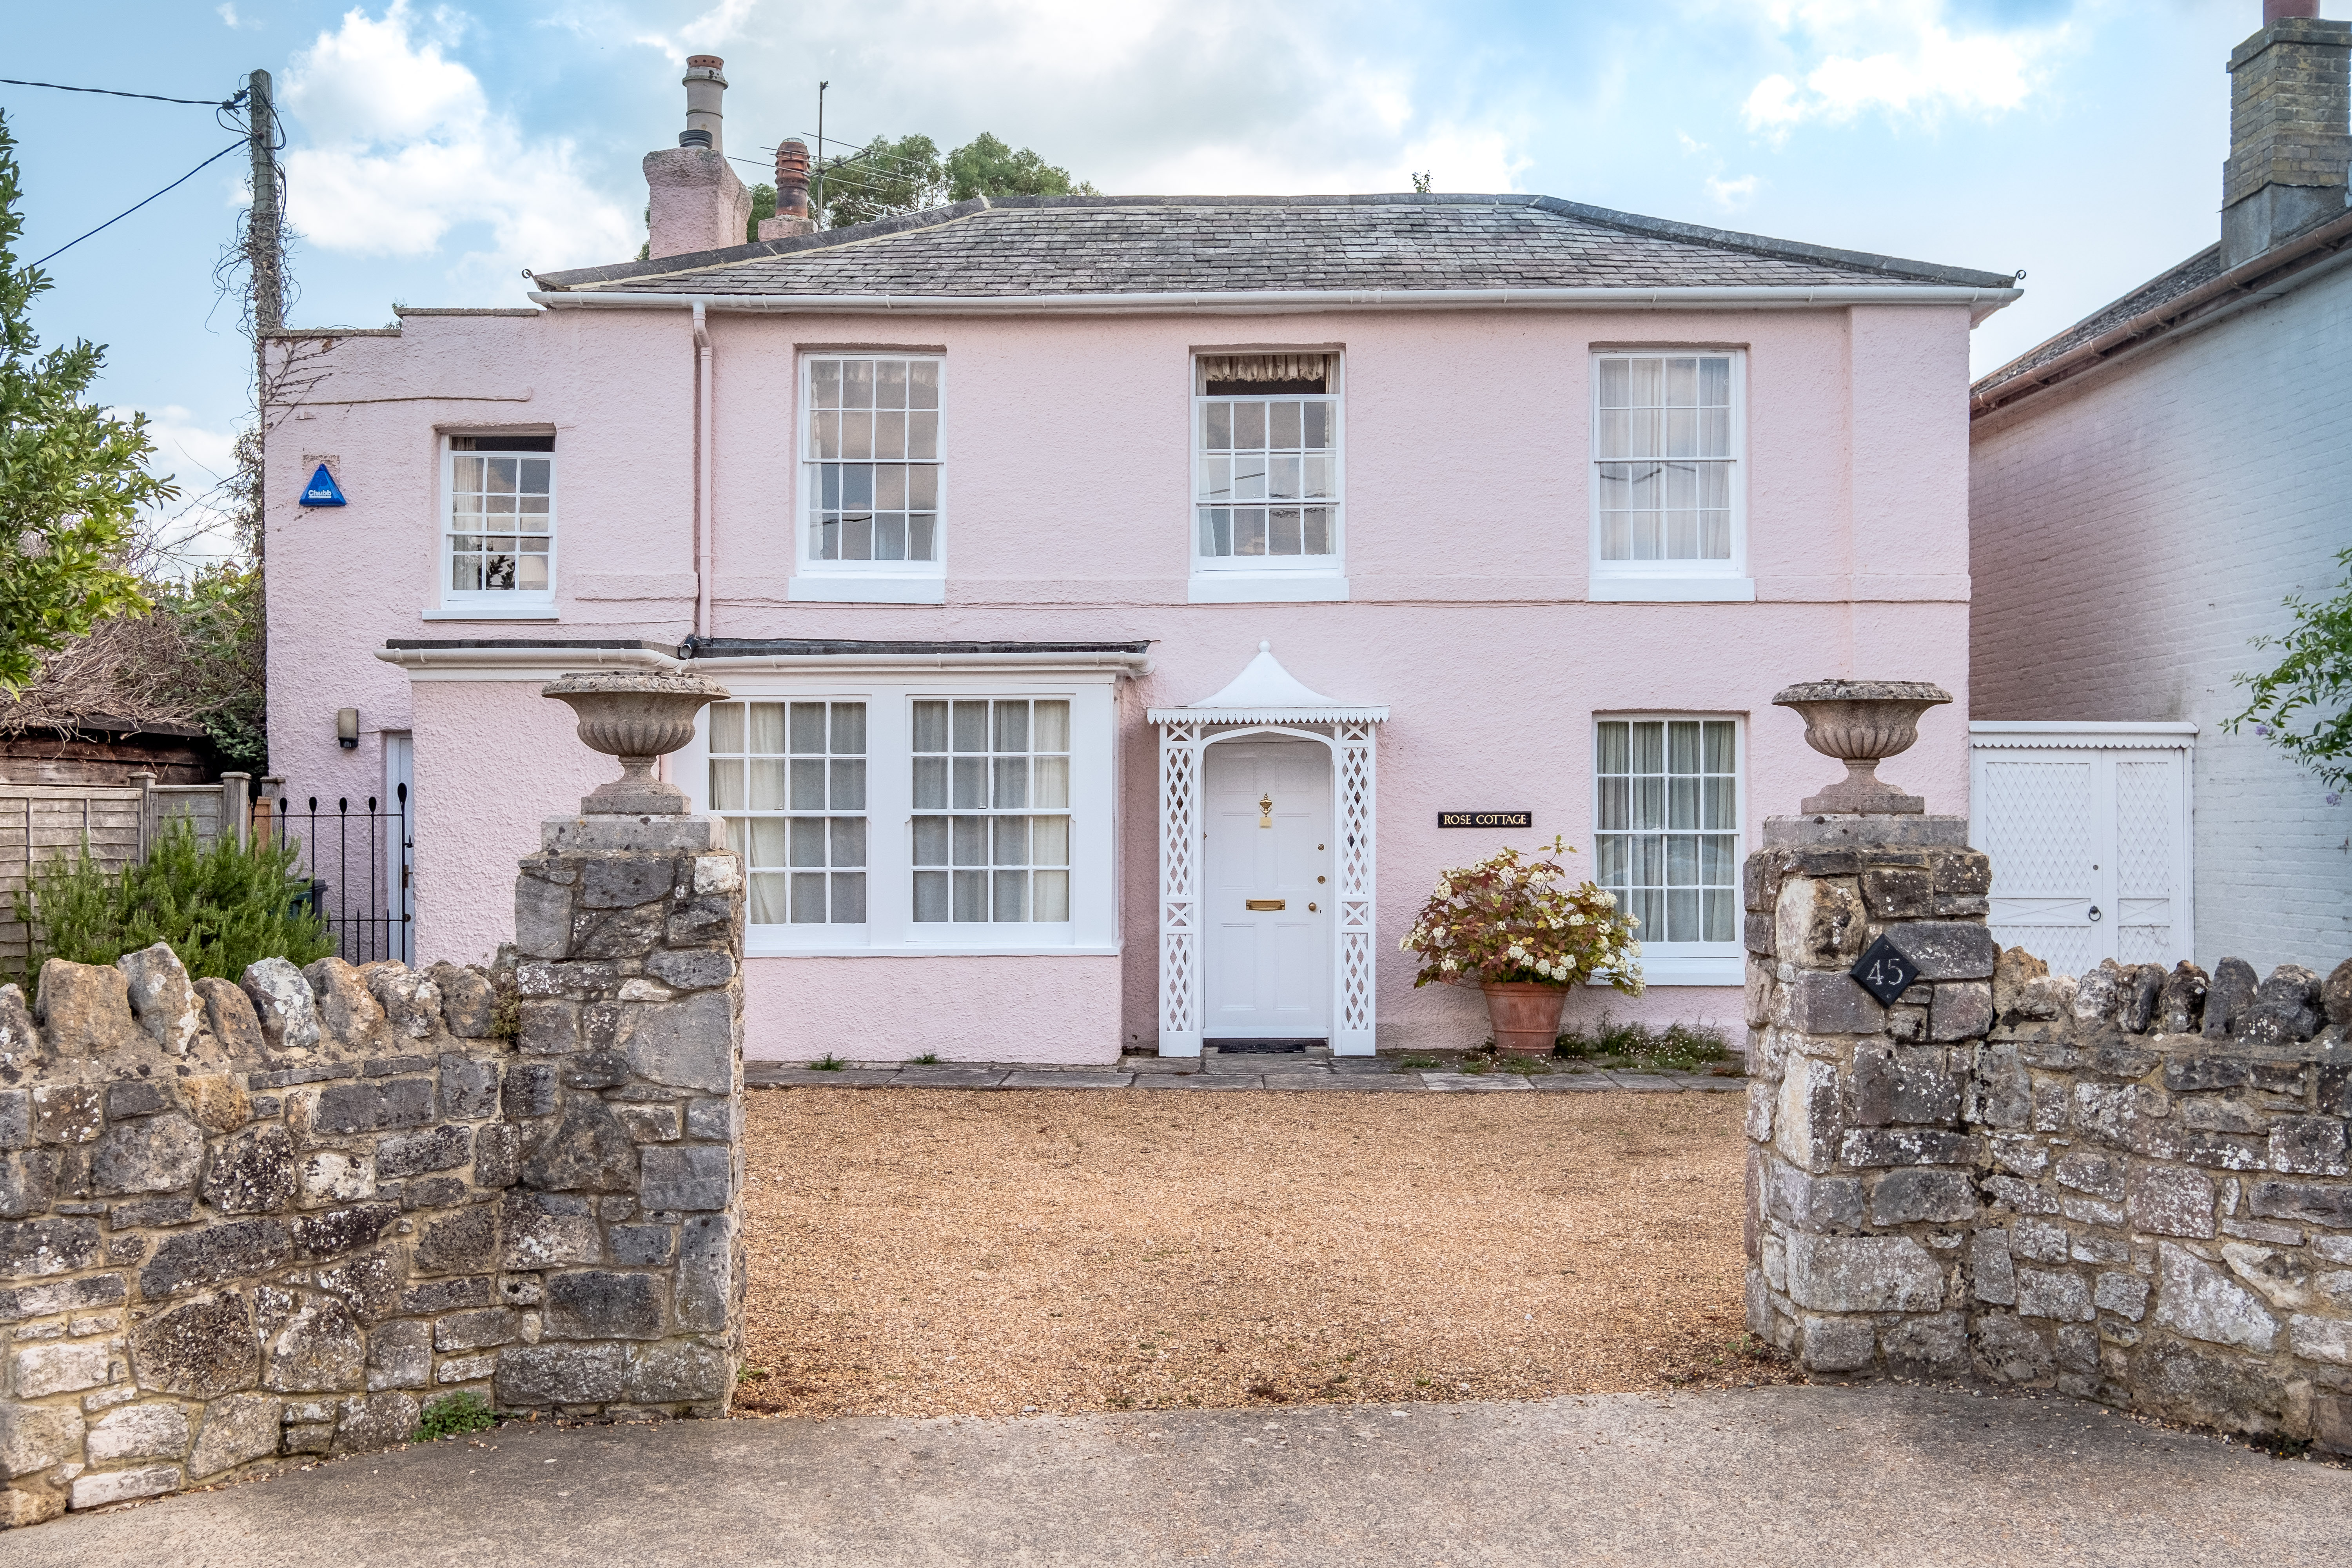 David Niven's idyllic childhood home comes up for sale: 'I adored it and was happier there than I had ever been'